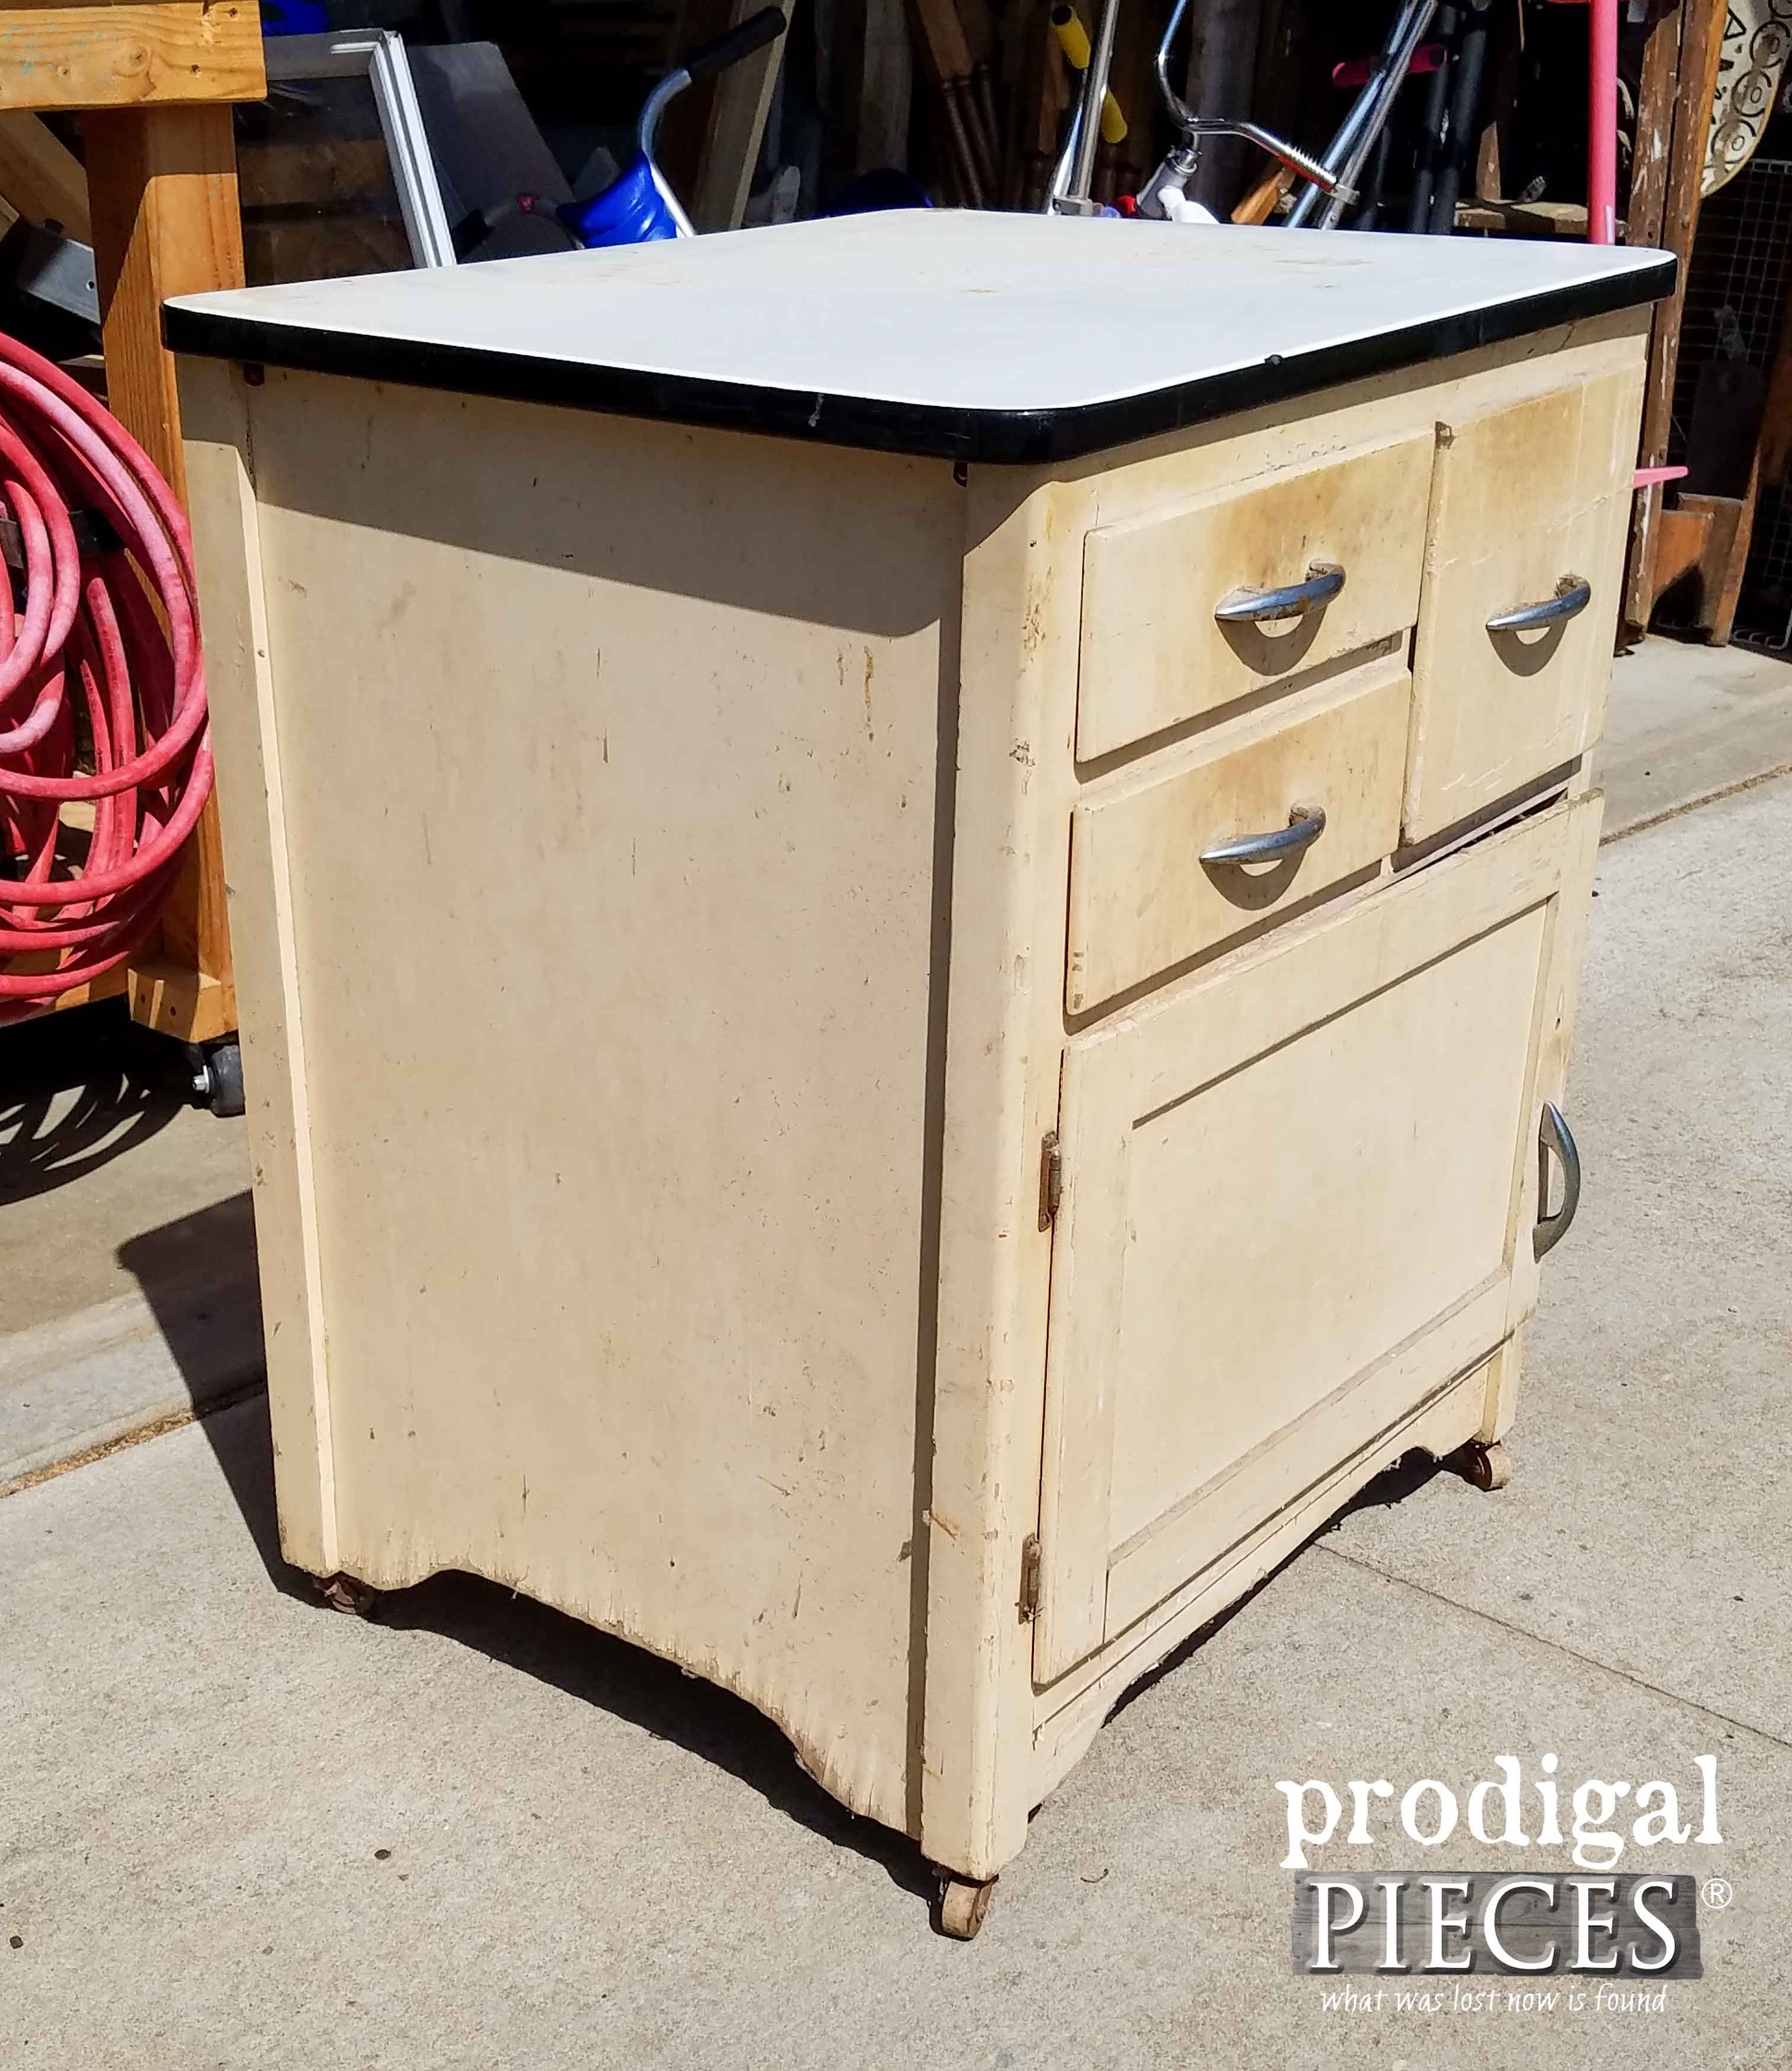 Side of Enamel Cabinet with Damage | Prodigal Pieces | prodigalpieces.com